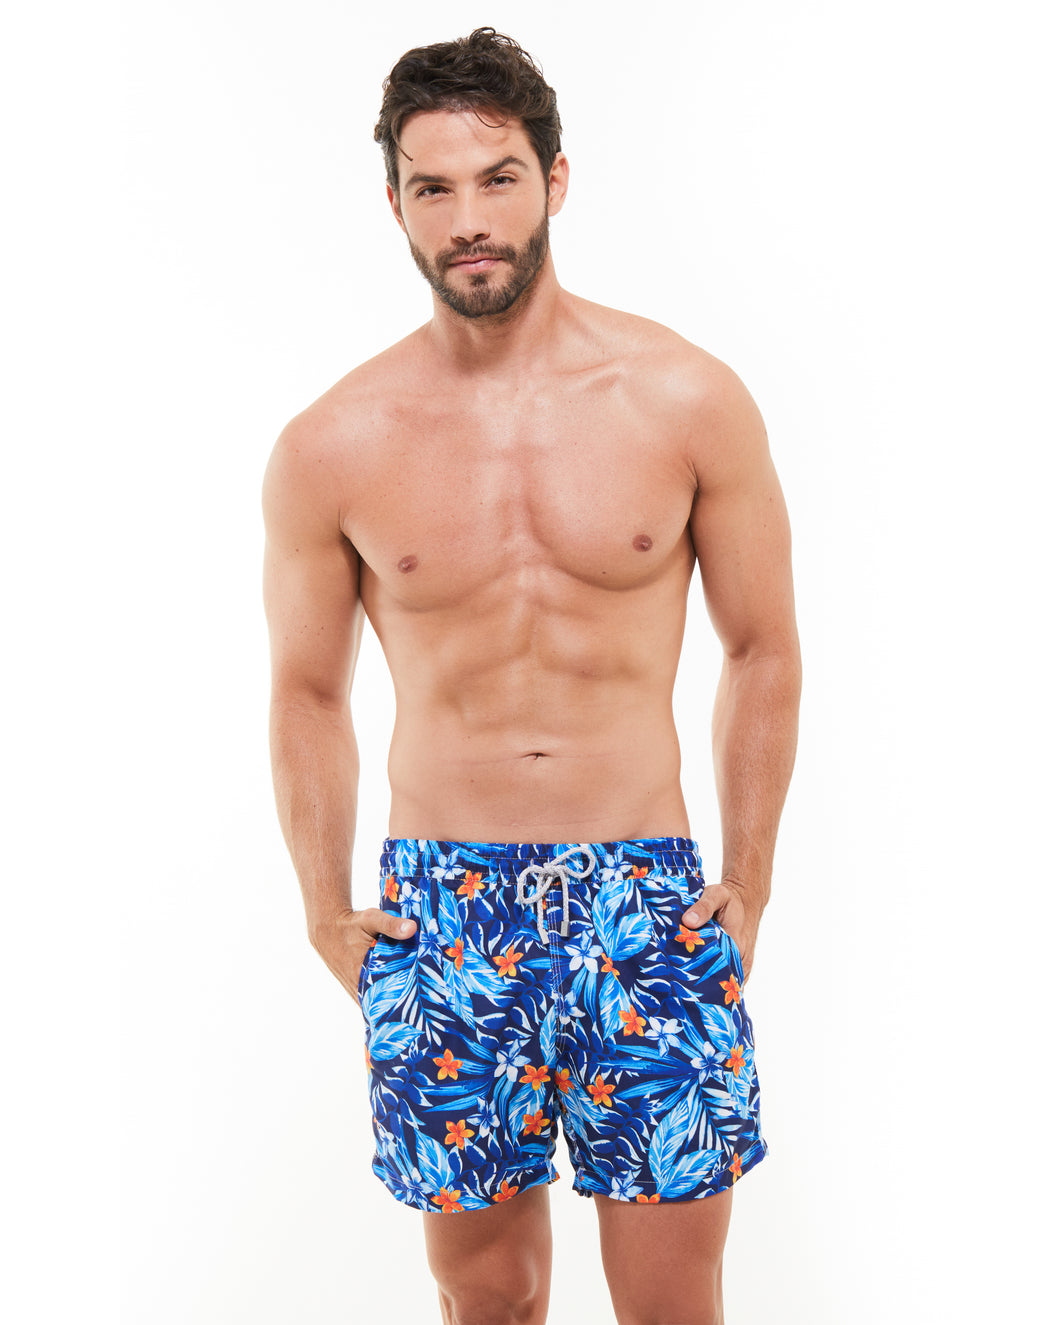 swim, men, beach, sun, verano, playa, traje de baño, hombre, playa, verano,style, fashion, woman, beautiful, trendy , instagood, unique, instadaily, shippingworldwide, onlineshopping, dayanamendozashop, shopdayanamendoza